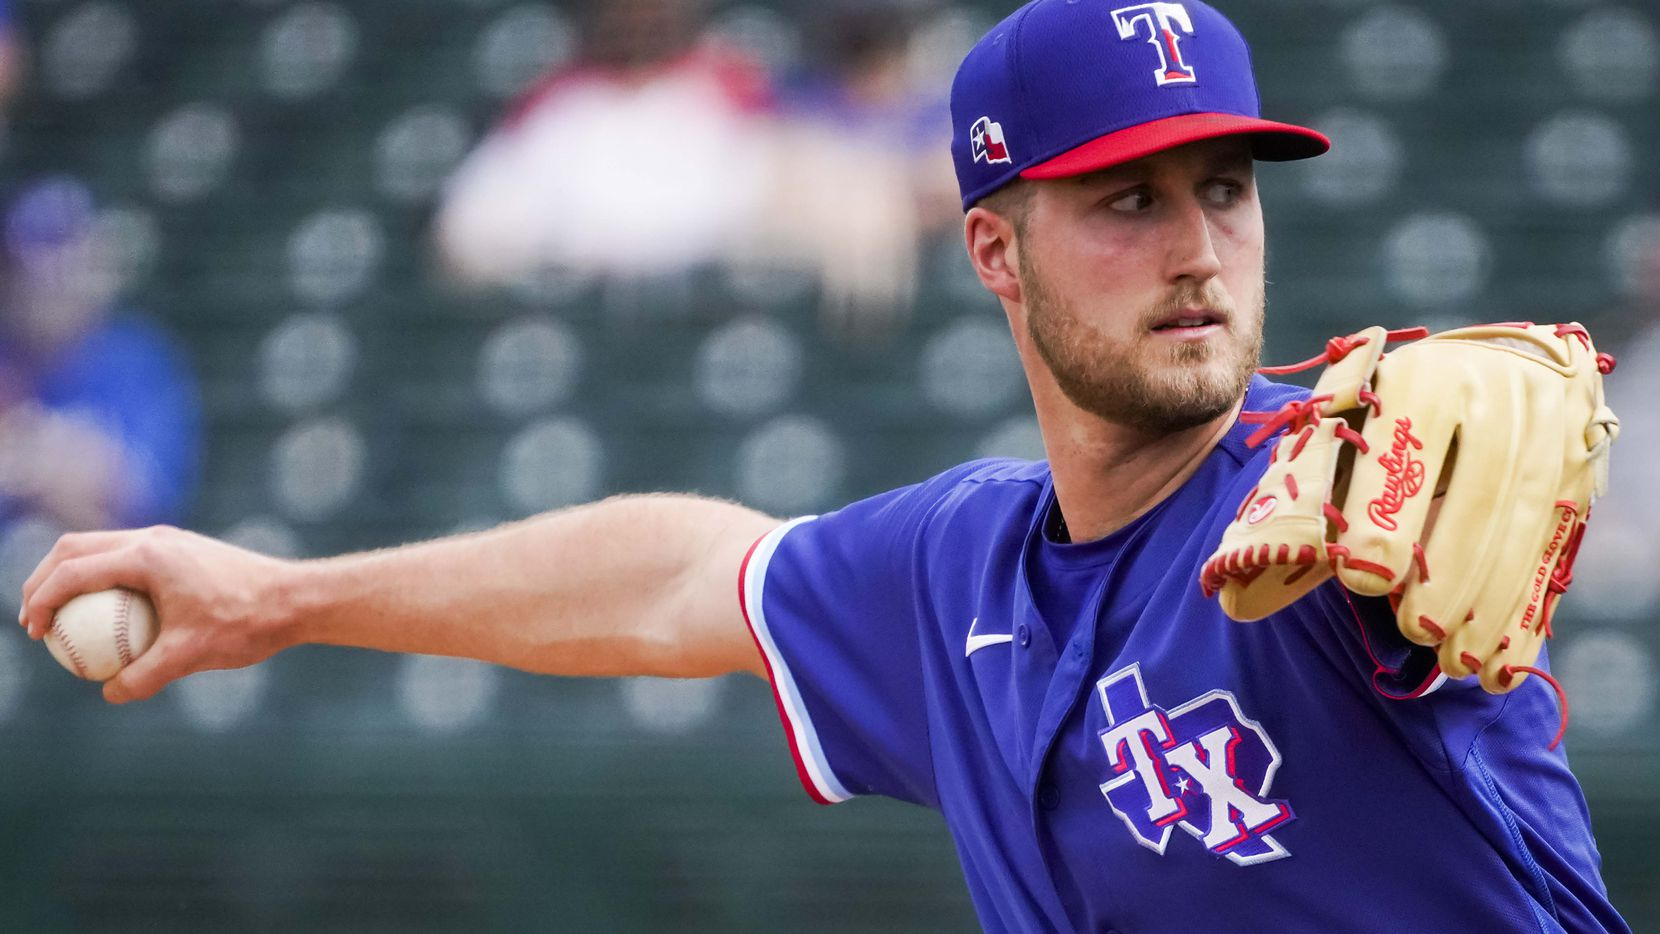 Rangers pitcher Kyle Cody delivers during the fourth inning of a spring training game against the Dodgers at Surprise Stadium on Sunday, March 7, 2021, in Surprise, Ariz.